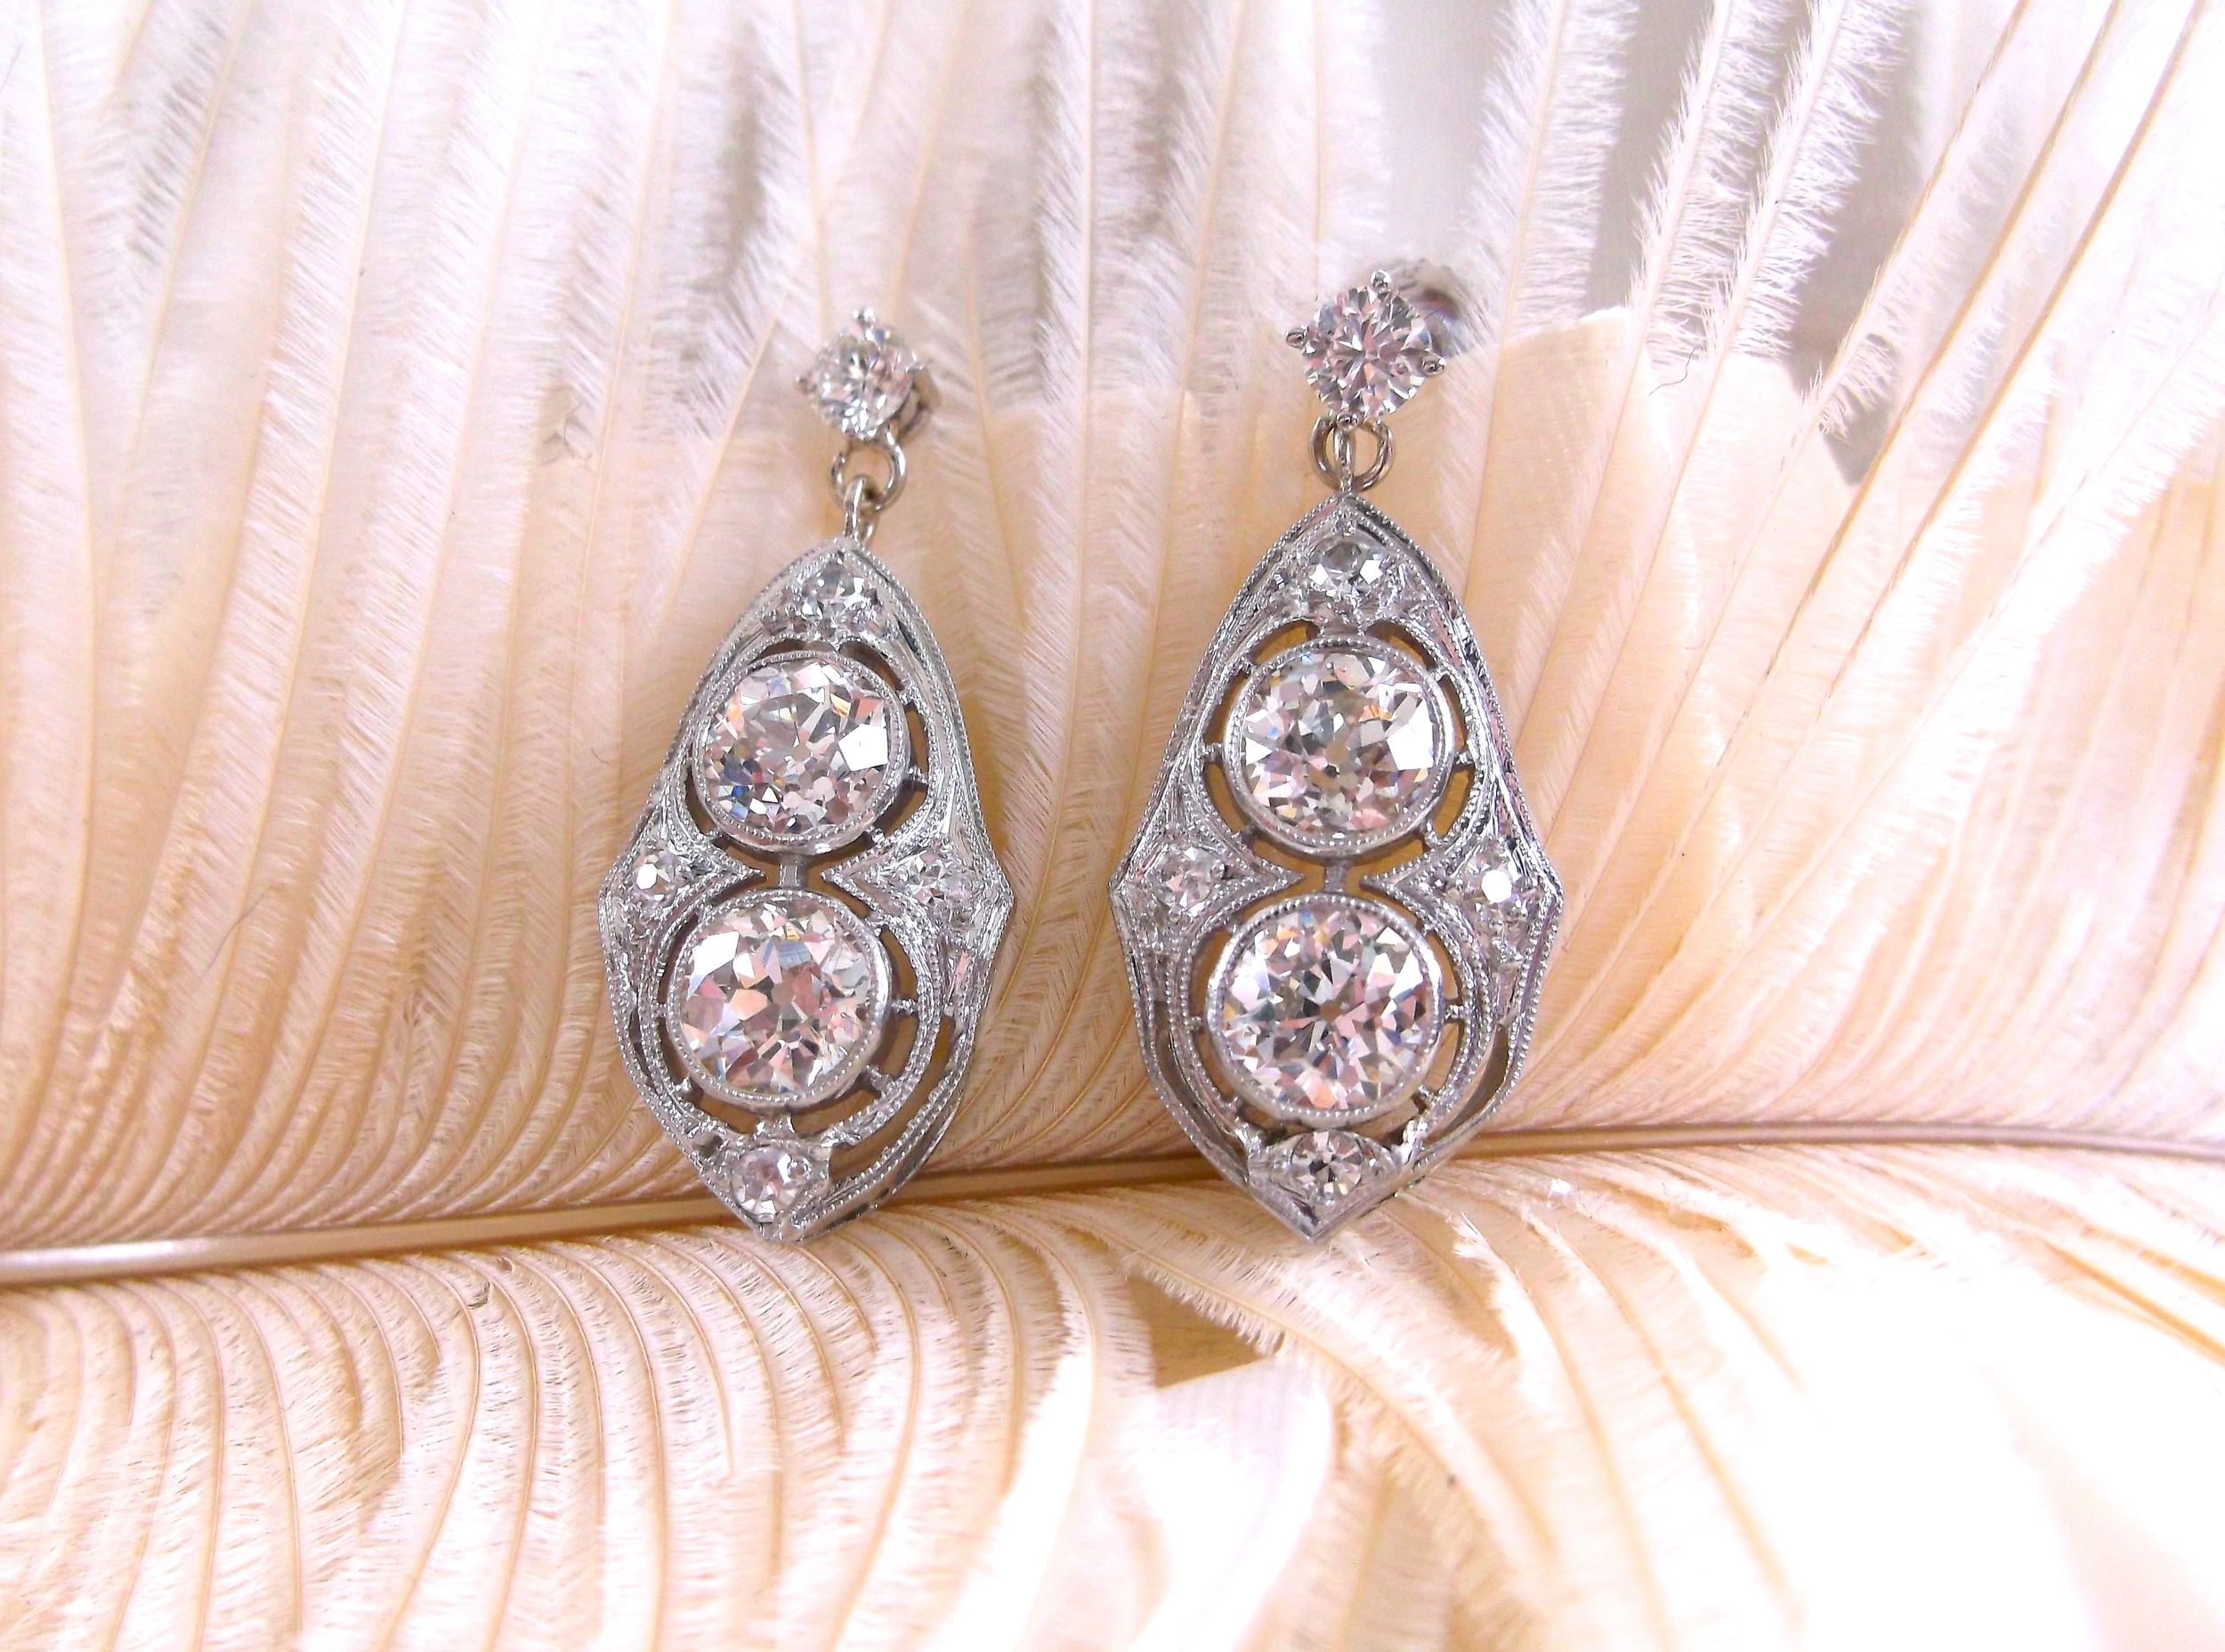 SOLD - Absolutely stunning Art Deco diamond earrings with 3.25 carats total weight in Old European cut diamonds.